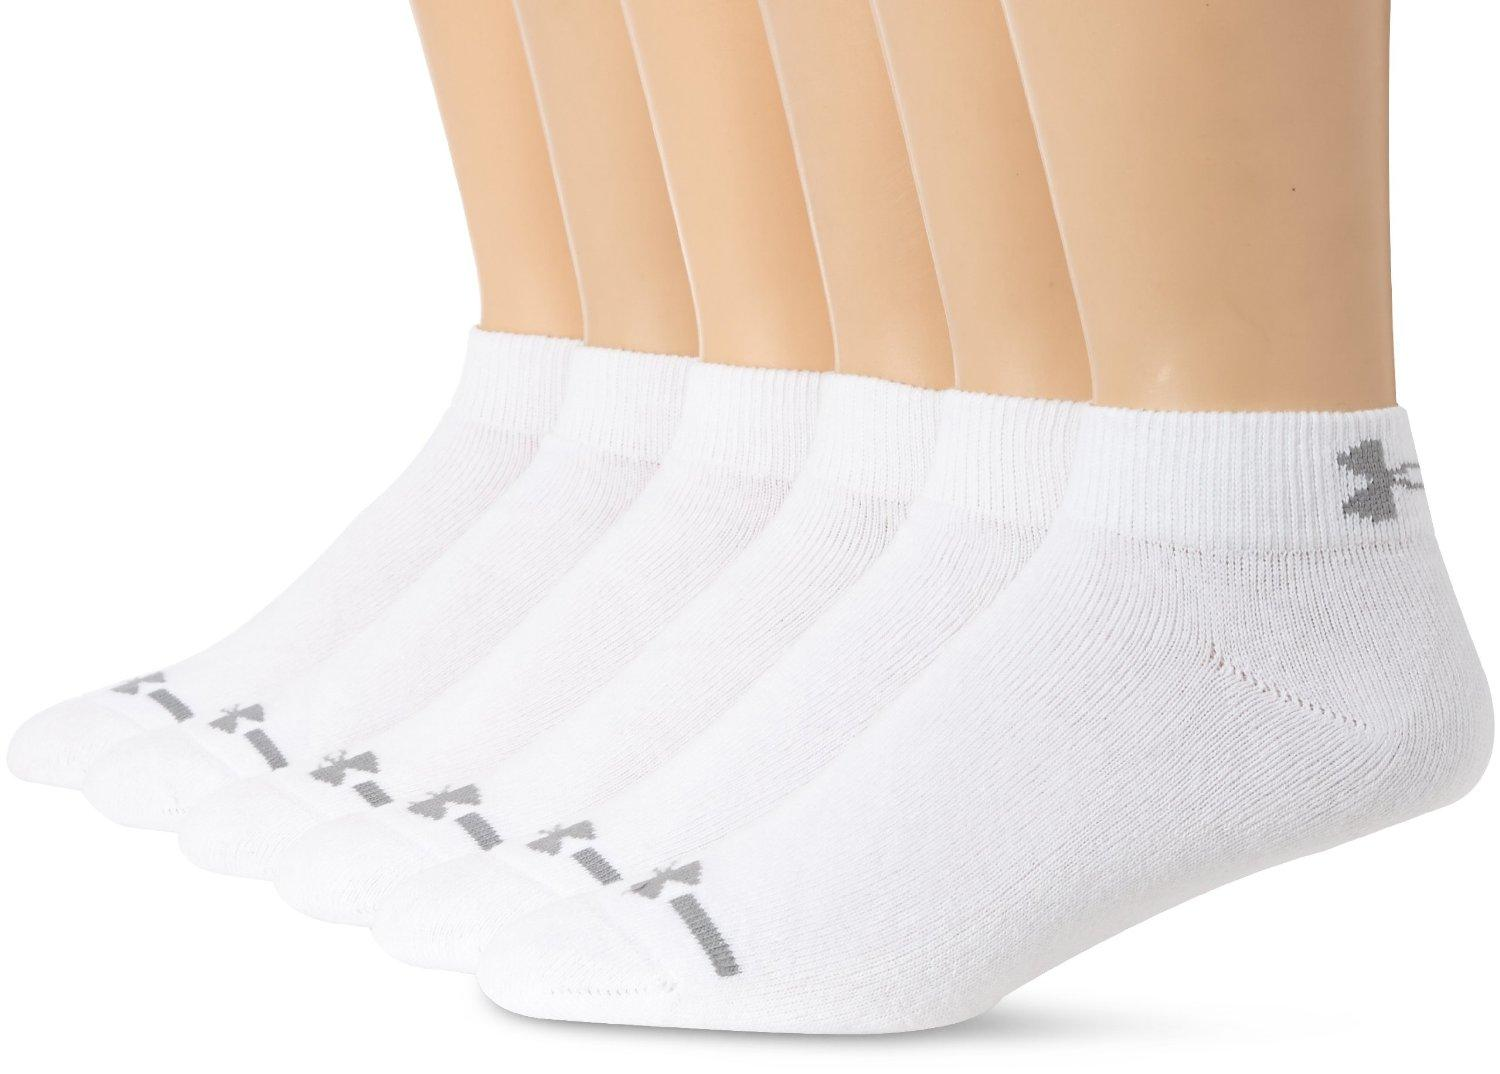 Under Armour Men's Charged Cotton Low-Cut Socks